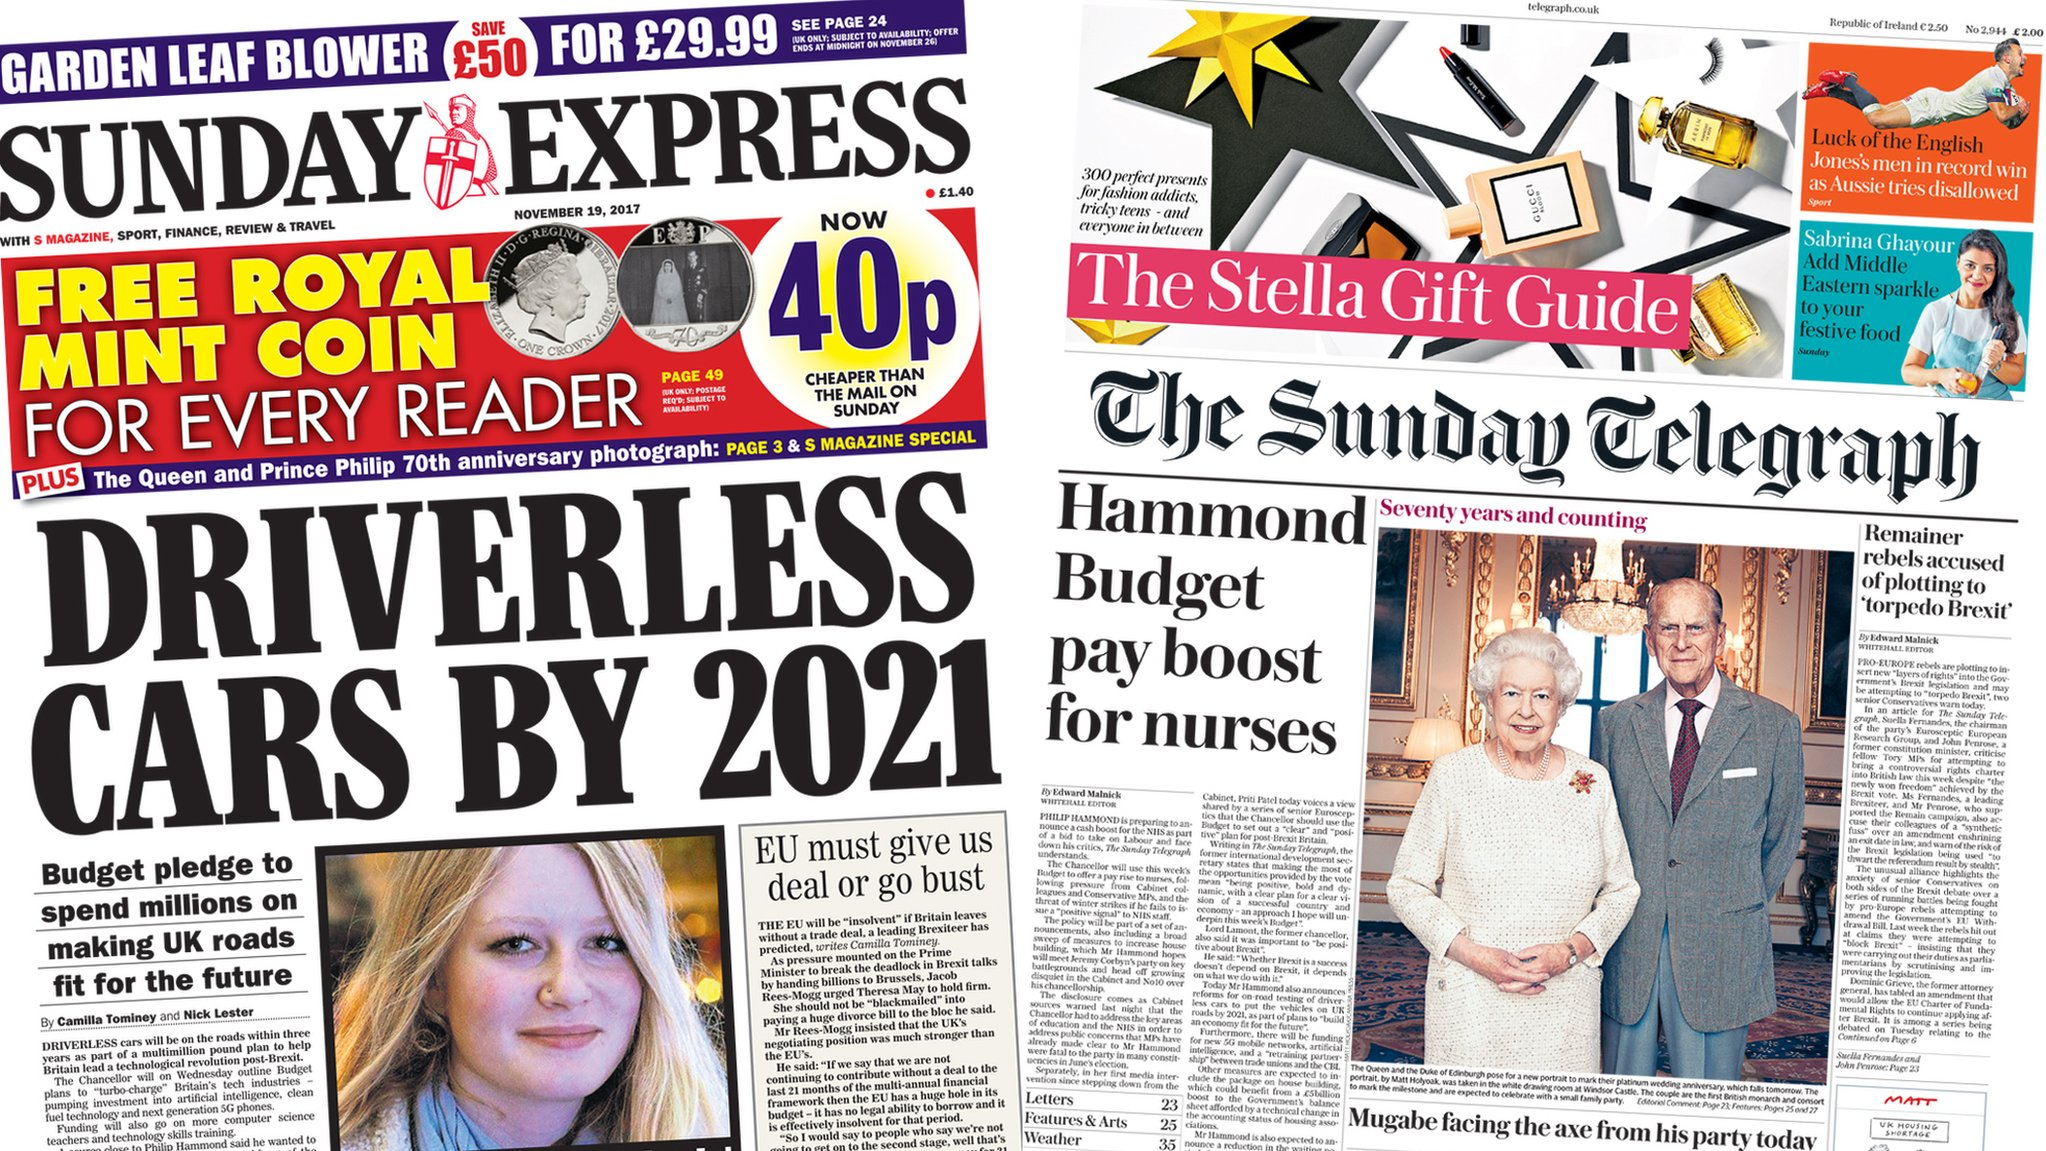 Newspaper headlines: Budget boost for driverless cars and NHS